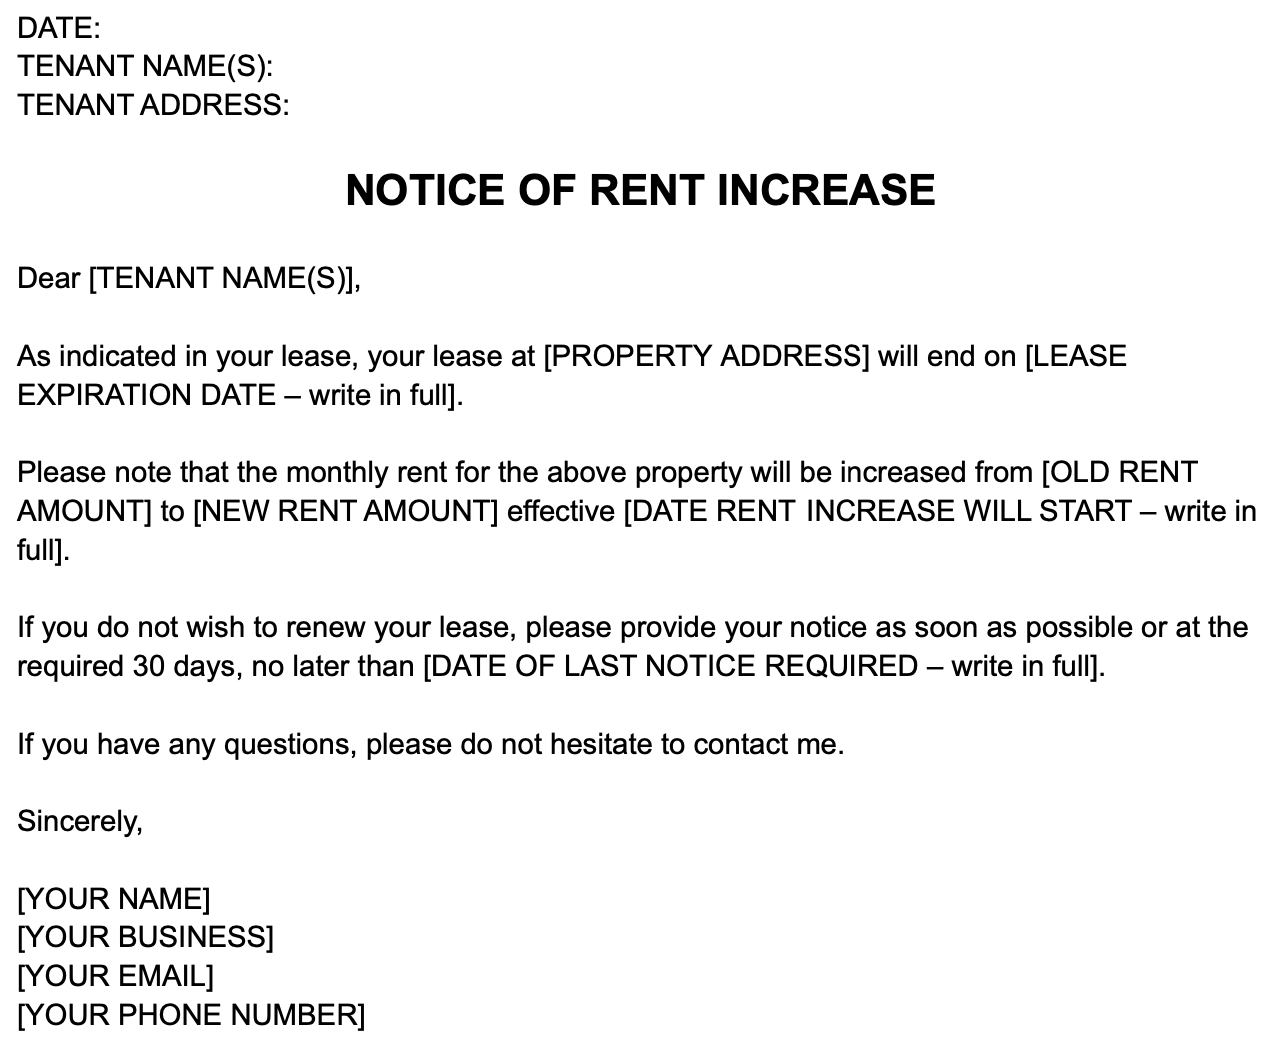 Images shows text of an example of how to write a rent increase notice